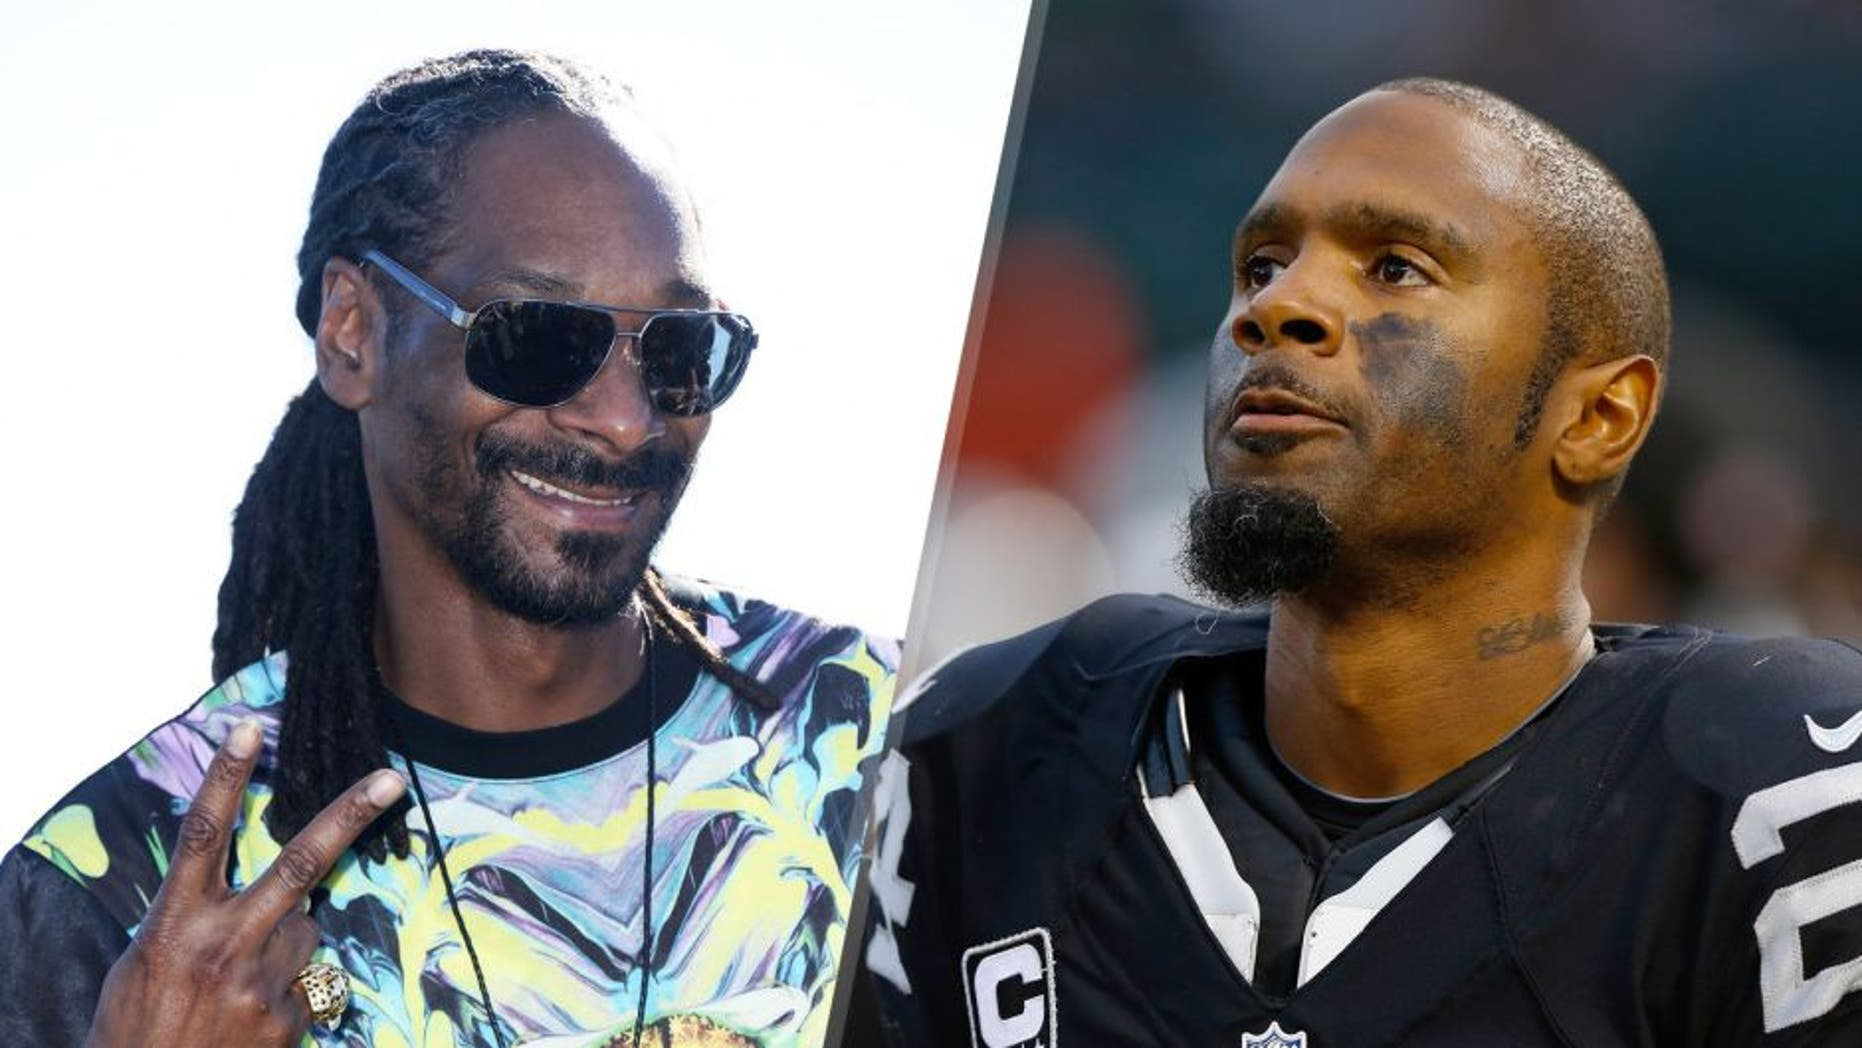 INGLEWOOD, CA - NOVEMBER 19: Rapper Snoop Dogg attends the 2nd annual Thanksgiving turkey giveaway at The Forum on November 19, 2015 in Inglewood, California. (Photo by Matt Winkelmeyer/Getty Images) OAKLAND, CA - DECEMBER 06: Free safety Charles Woodson #24 of the Oakland Raiders stands on the sidelines against the Kansas City Chiefs during the fourth quarter at O.co Coliseum on December 6, 2015 in Oakland, California. The Kansas City Chiefs defeated the Oakland Raiders 34-20. Photo by Jason O. Watson/Getty Images)